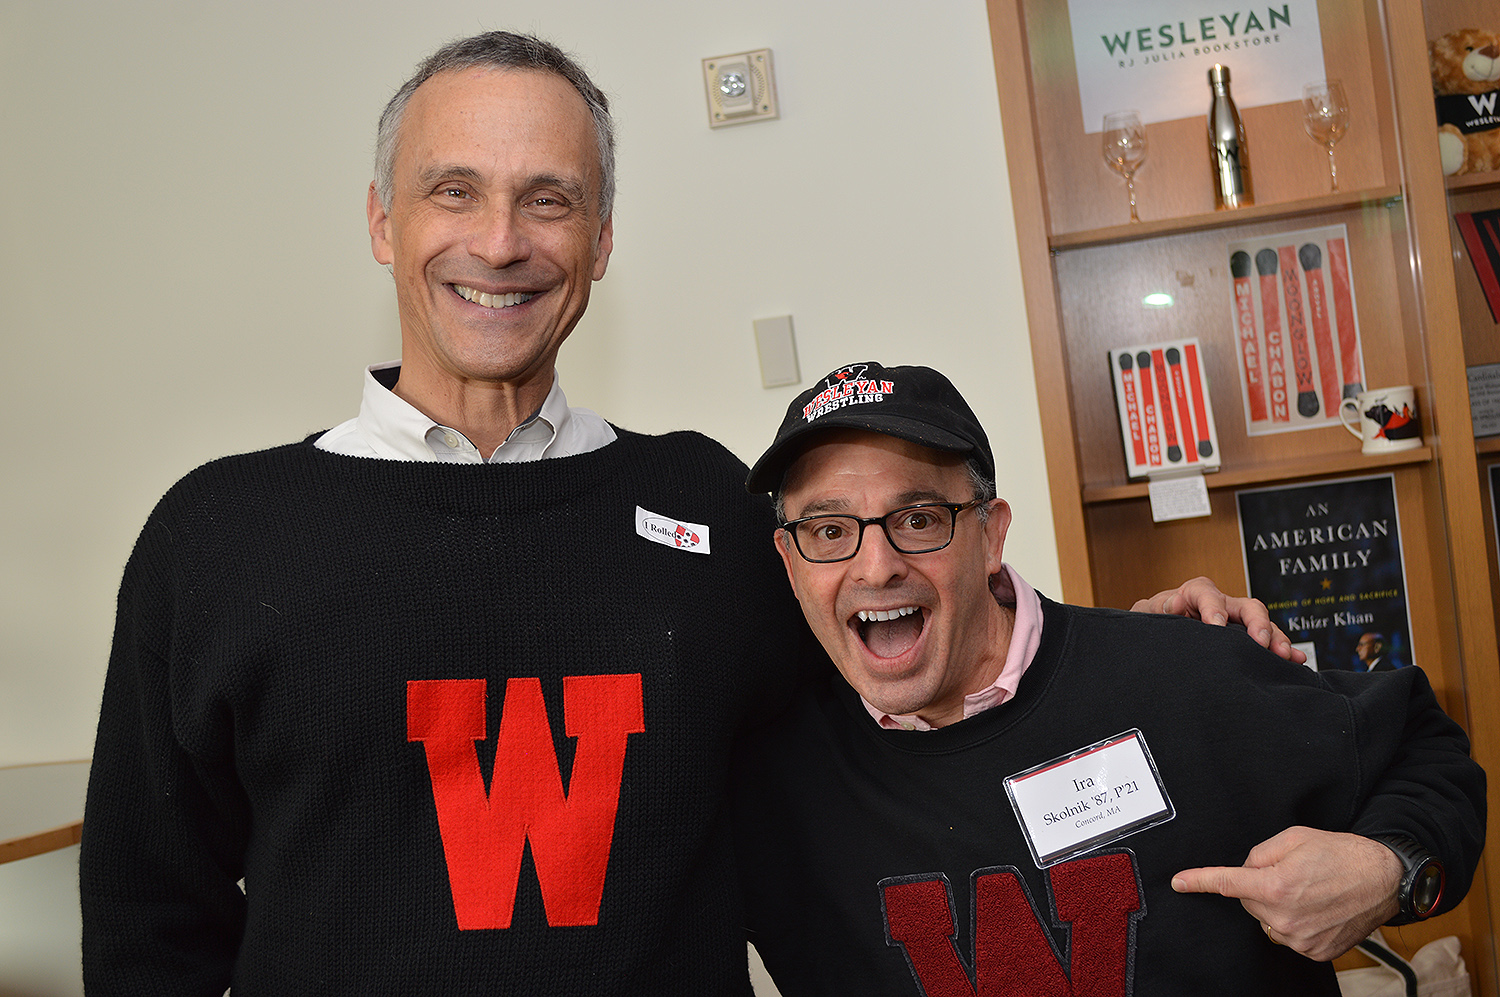 Wesleyan President Michael Roth '78 mingles with Ira Skolnik '87, P'21 during the Alumni Donor Reception Nov. 4.